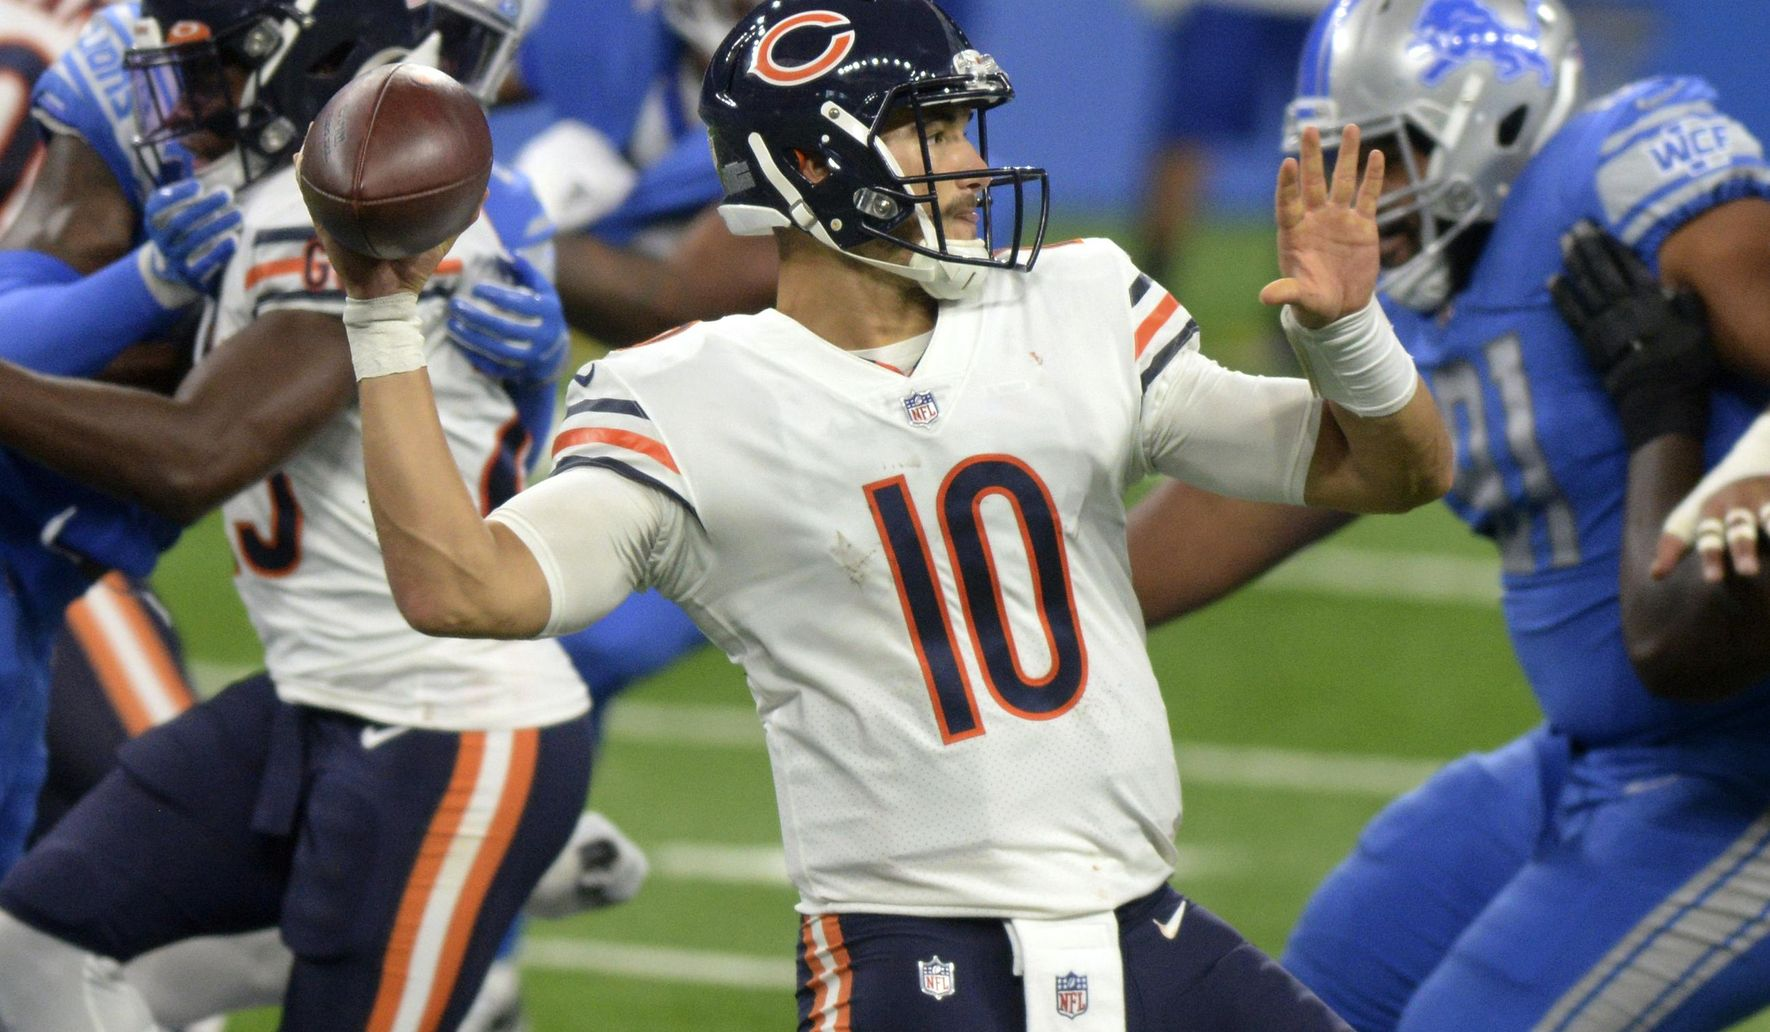 Giants-bears_preview_football_41267_c0-108-2595-1621_s1770x1032